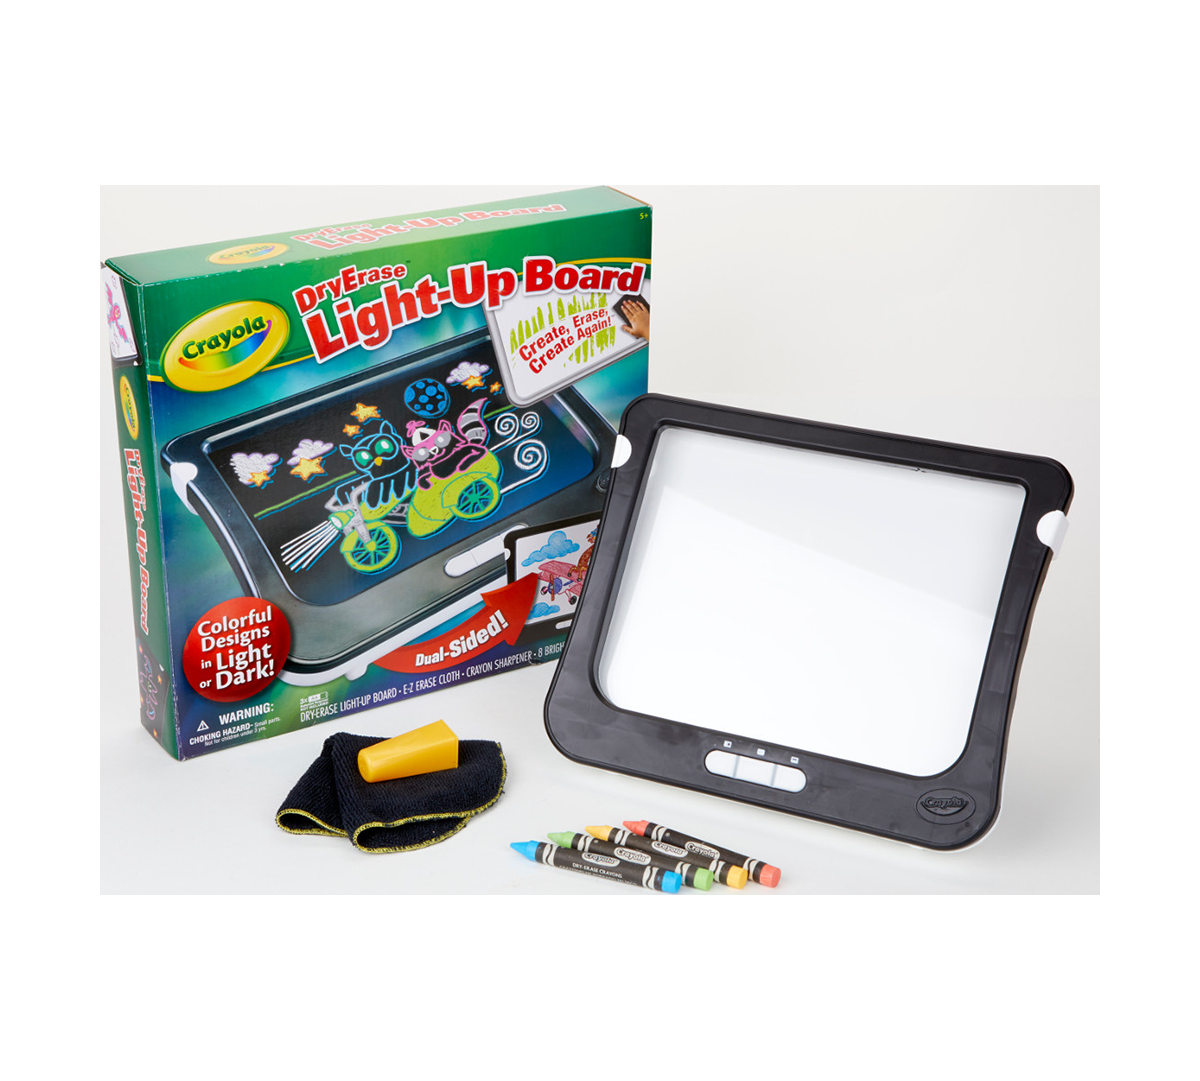 Download Dry-Erase Light-Up Board | Crayola